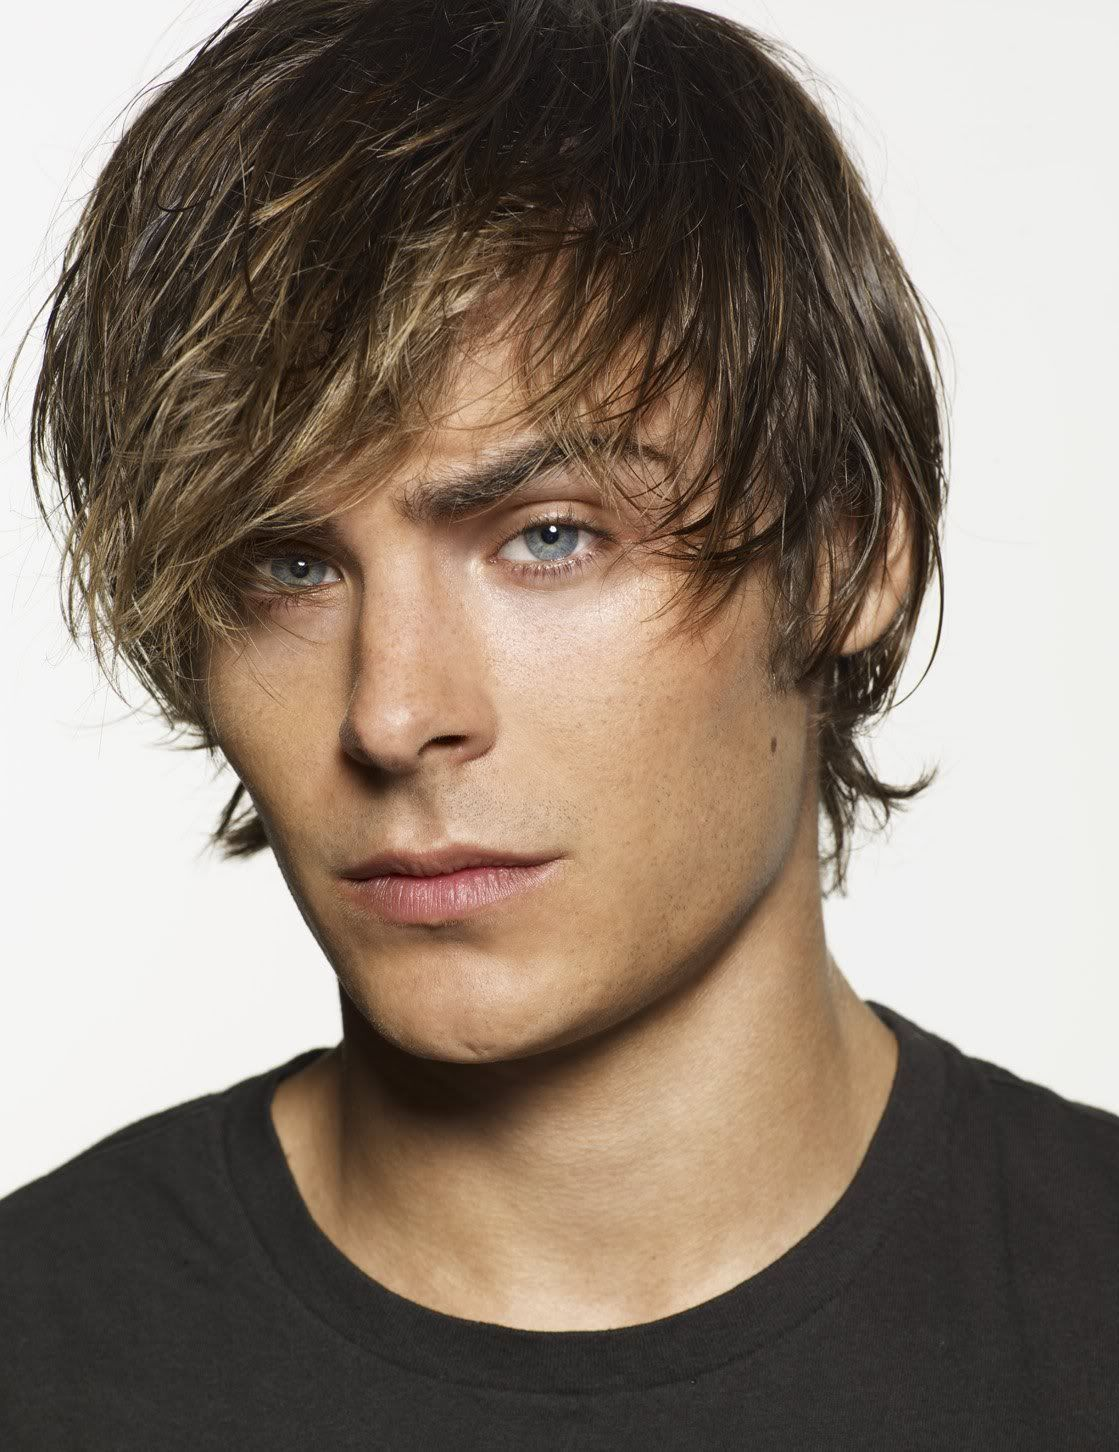 Boy hairstyle wigs pin by maggie schipper on men  pinterest  hairstyles haircuts